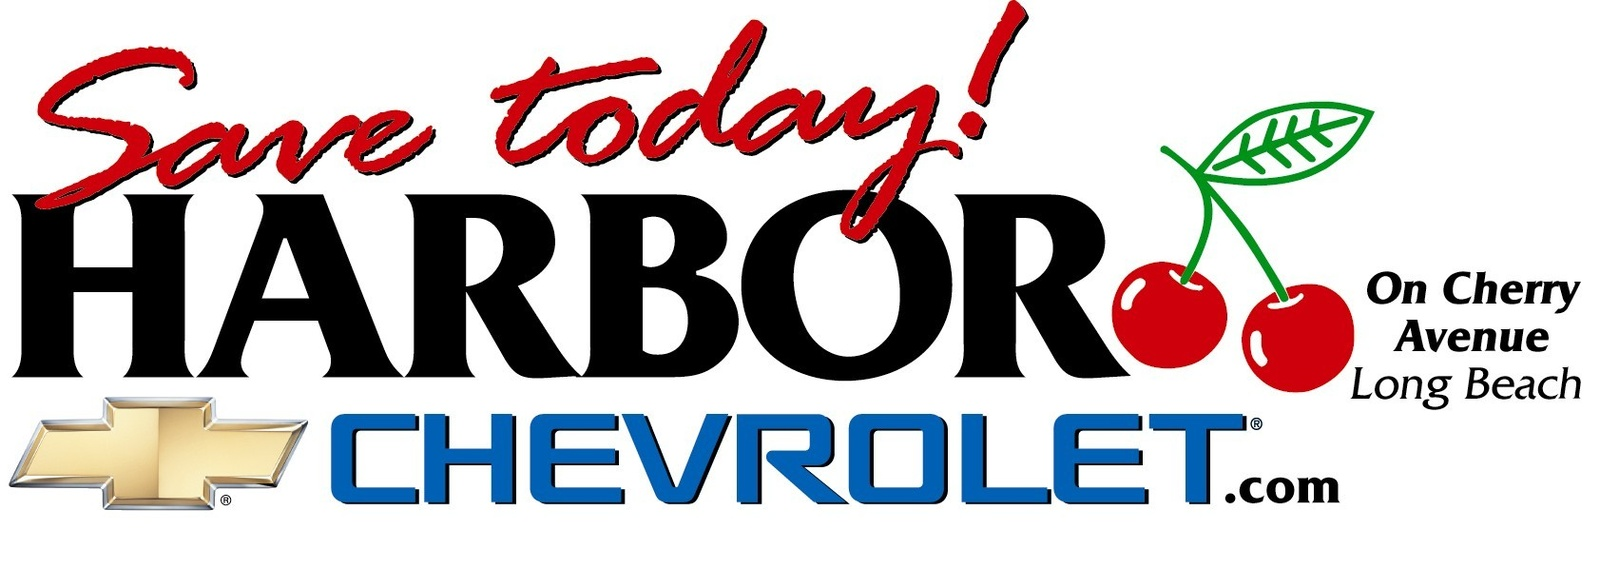 harbor chevrolet long beach ca read consumer reviews browse used and new cars for sale. Black Bedroom Furniture Sets. Home Design Ideas